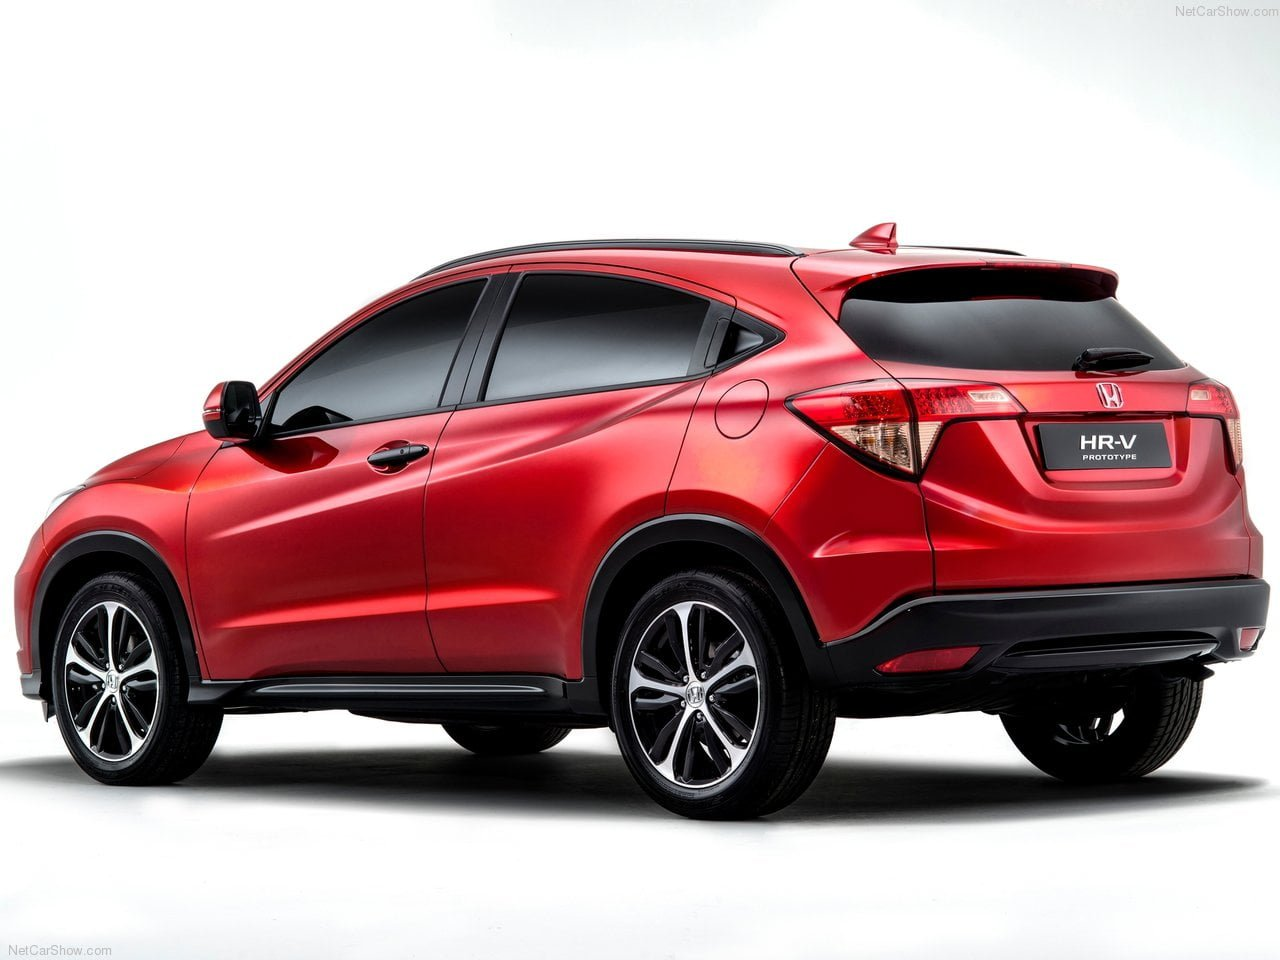 Honda HRV India Launch Date, Price, Specifications ...